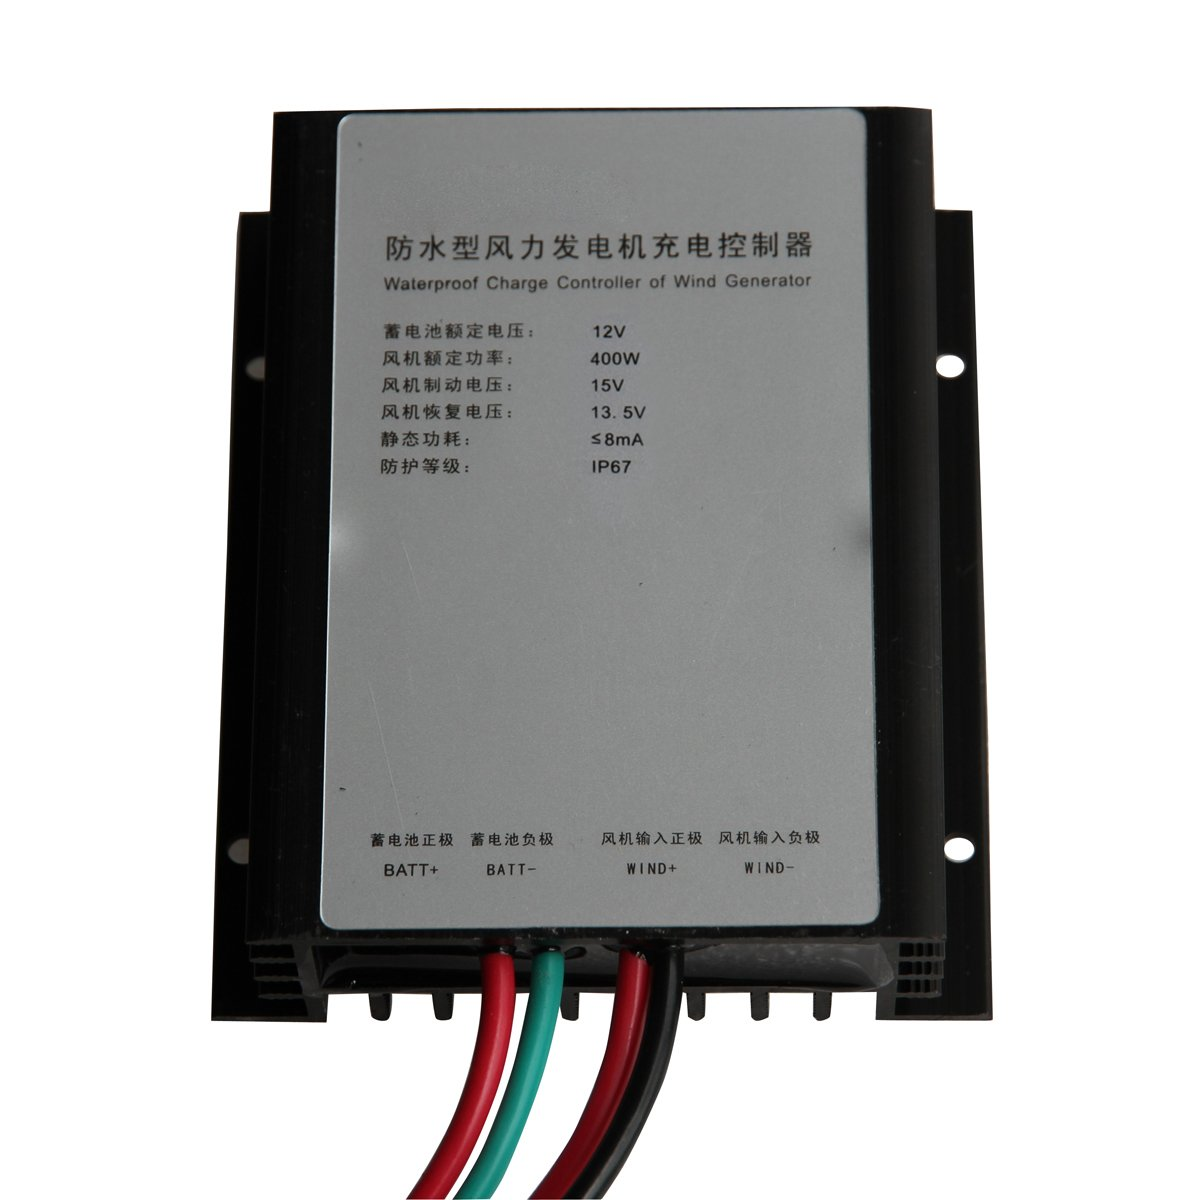 SUNGOLDPOWER New Waterproof 100W 200W 300W 400W 12V DC Wind Charge Controller Wind Turbine Wind Generator.Good Quality